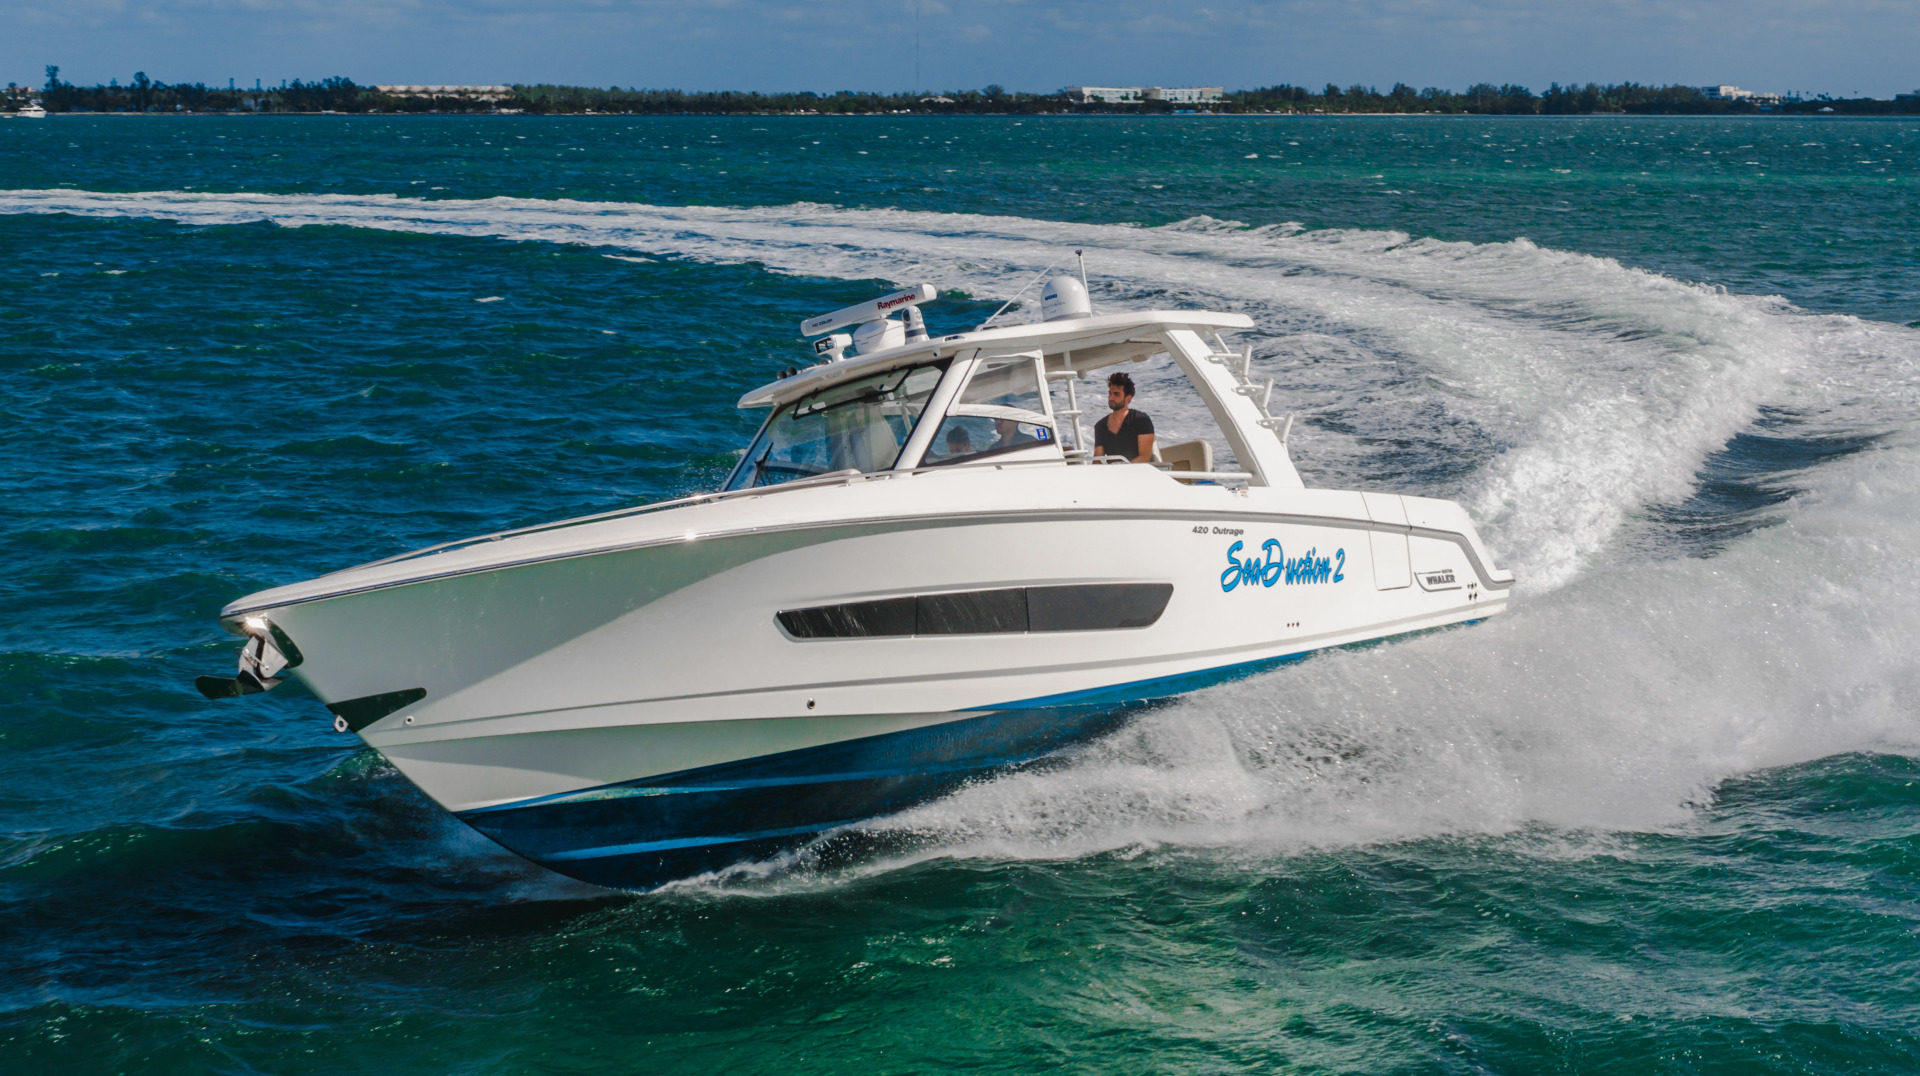 42' Boston Whaler 2016 Outrage Sea Duction